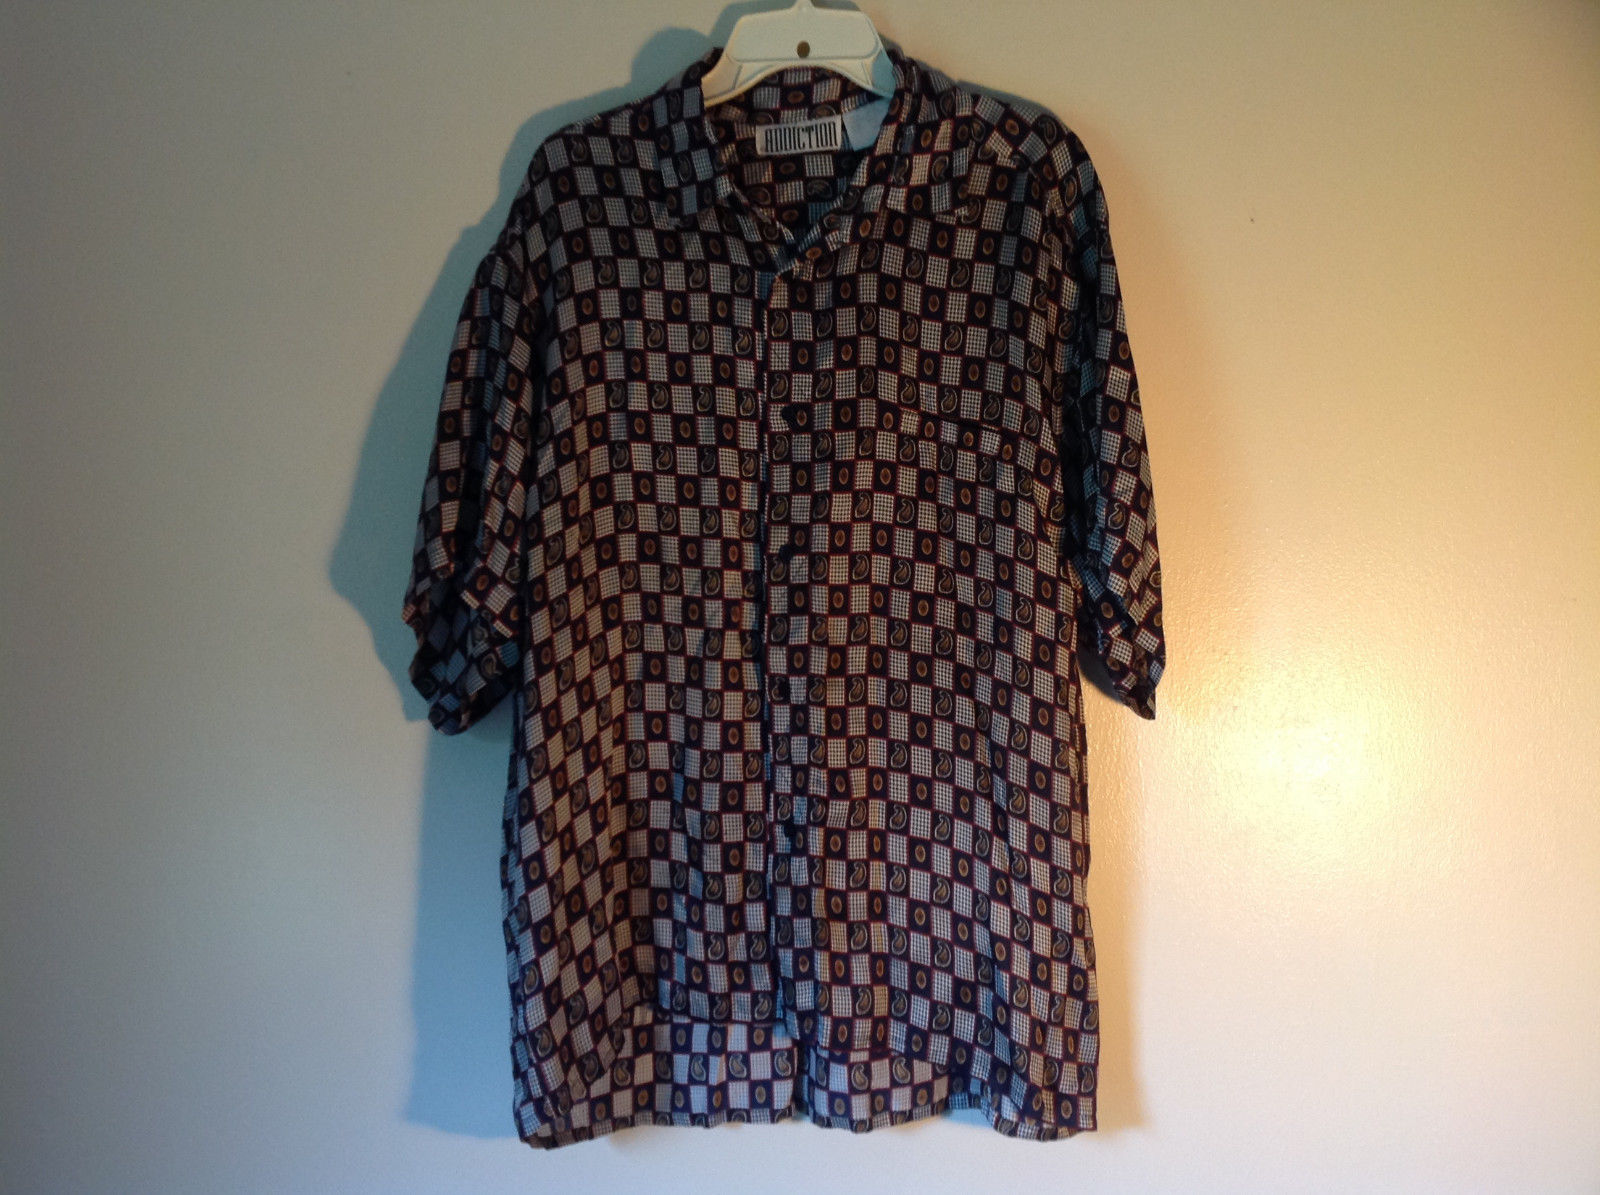 Button Up Black and White Checkers Silk Shirt by Addiction Size Medium 1 Pocket